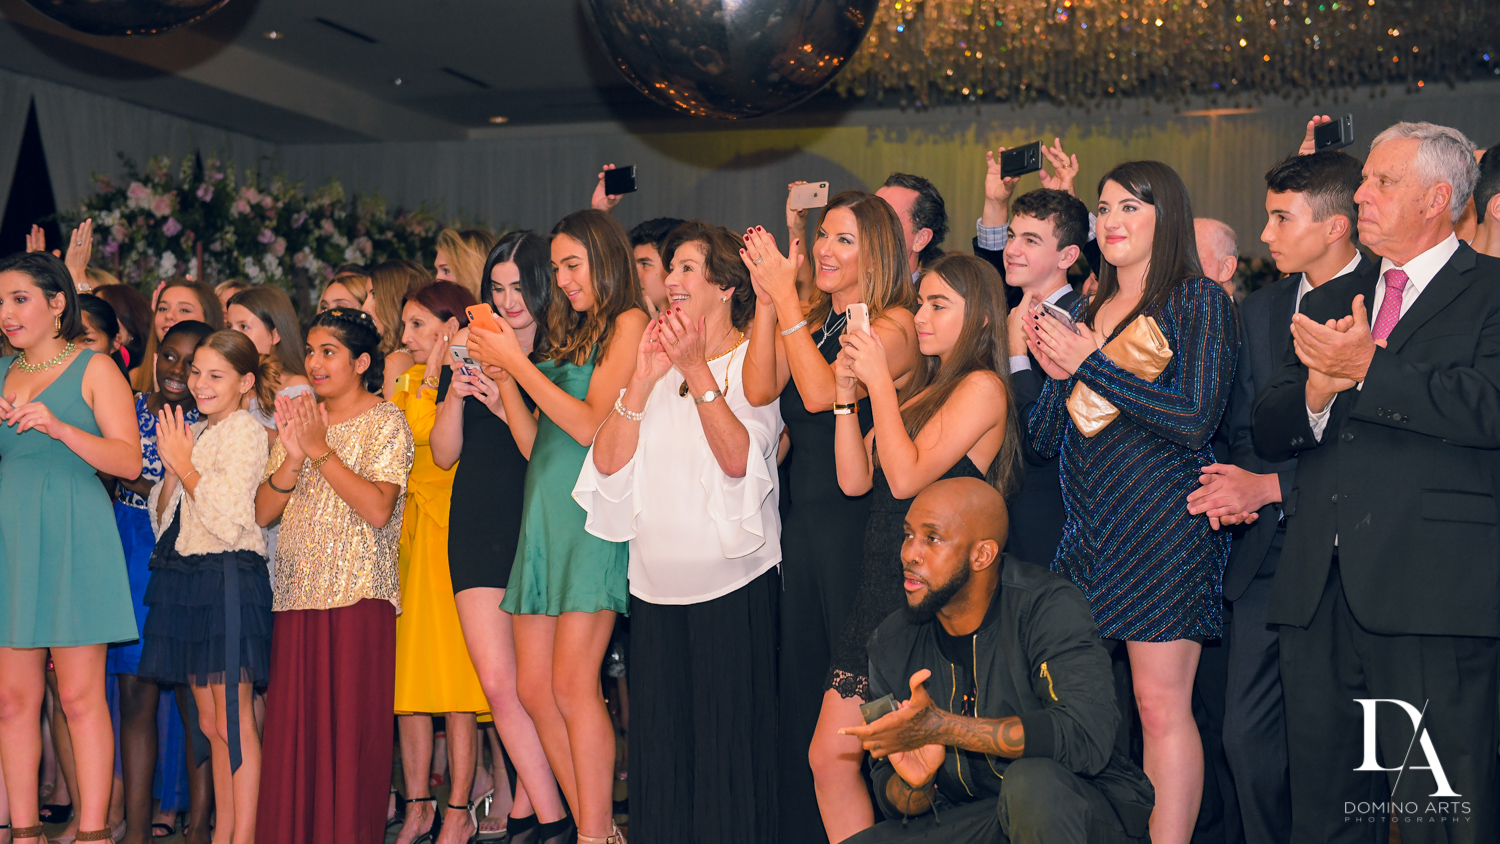 party pics at Masquerade Ball Bat Mitzvah at Ritz Carlton Fort Lauderdale by Domino Arts Photography